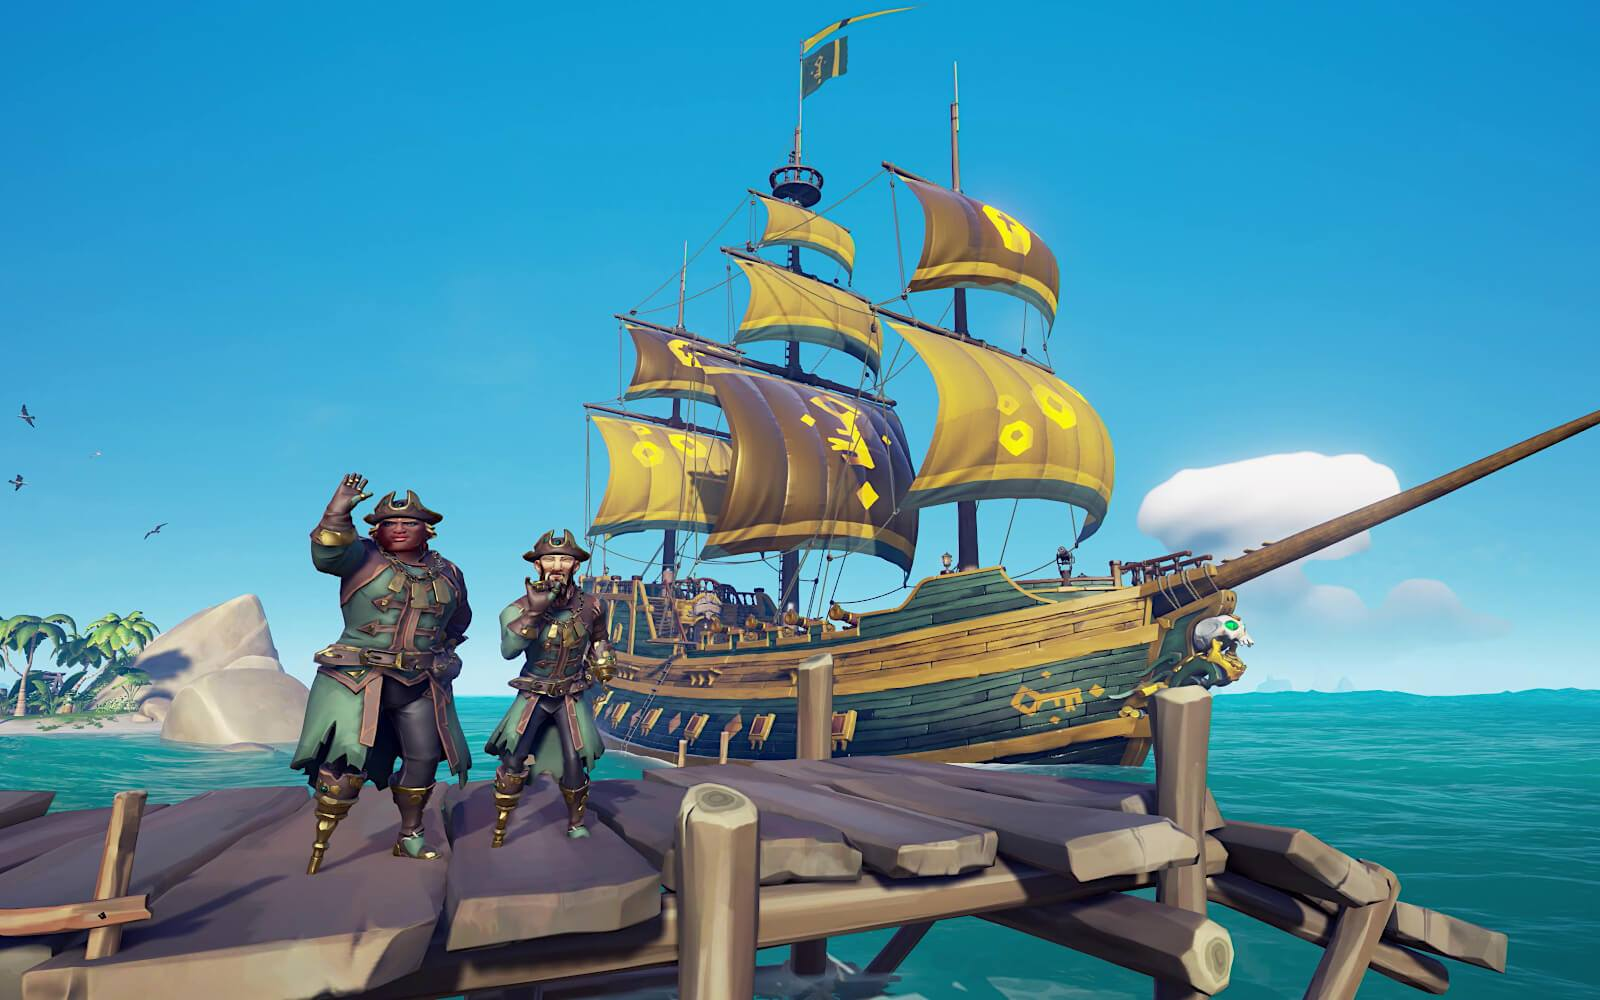 Disponible via Xbox One et Windows depuis le mois de mars 2018, Sea of Thieves arrive sur Steam le 3 juin 2020.